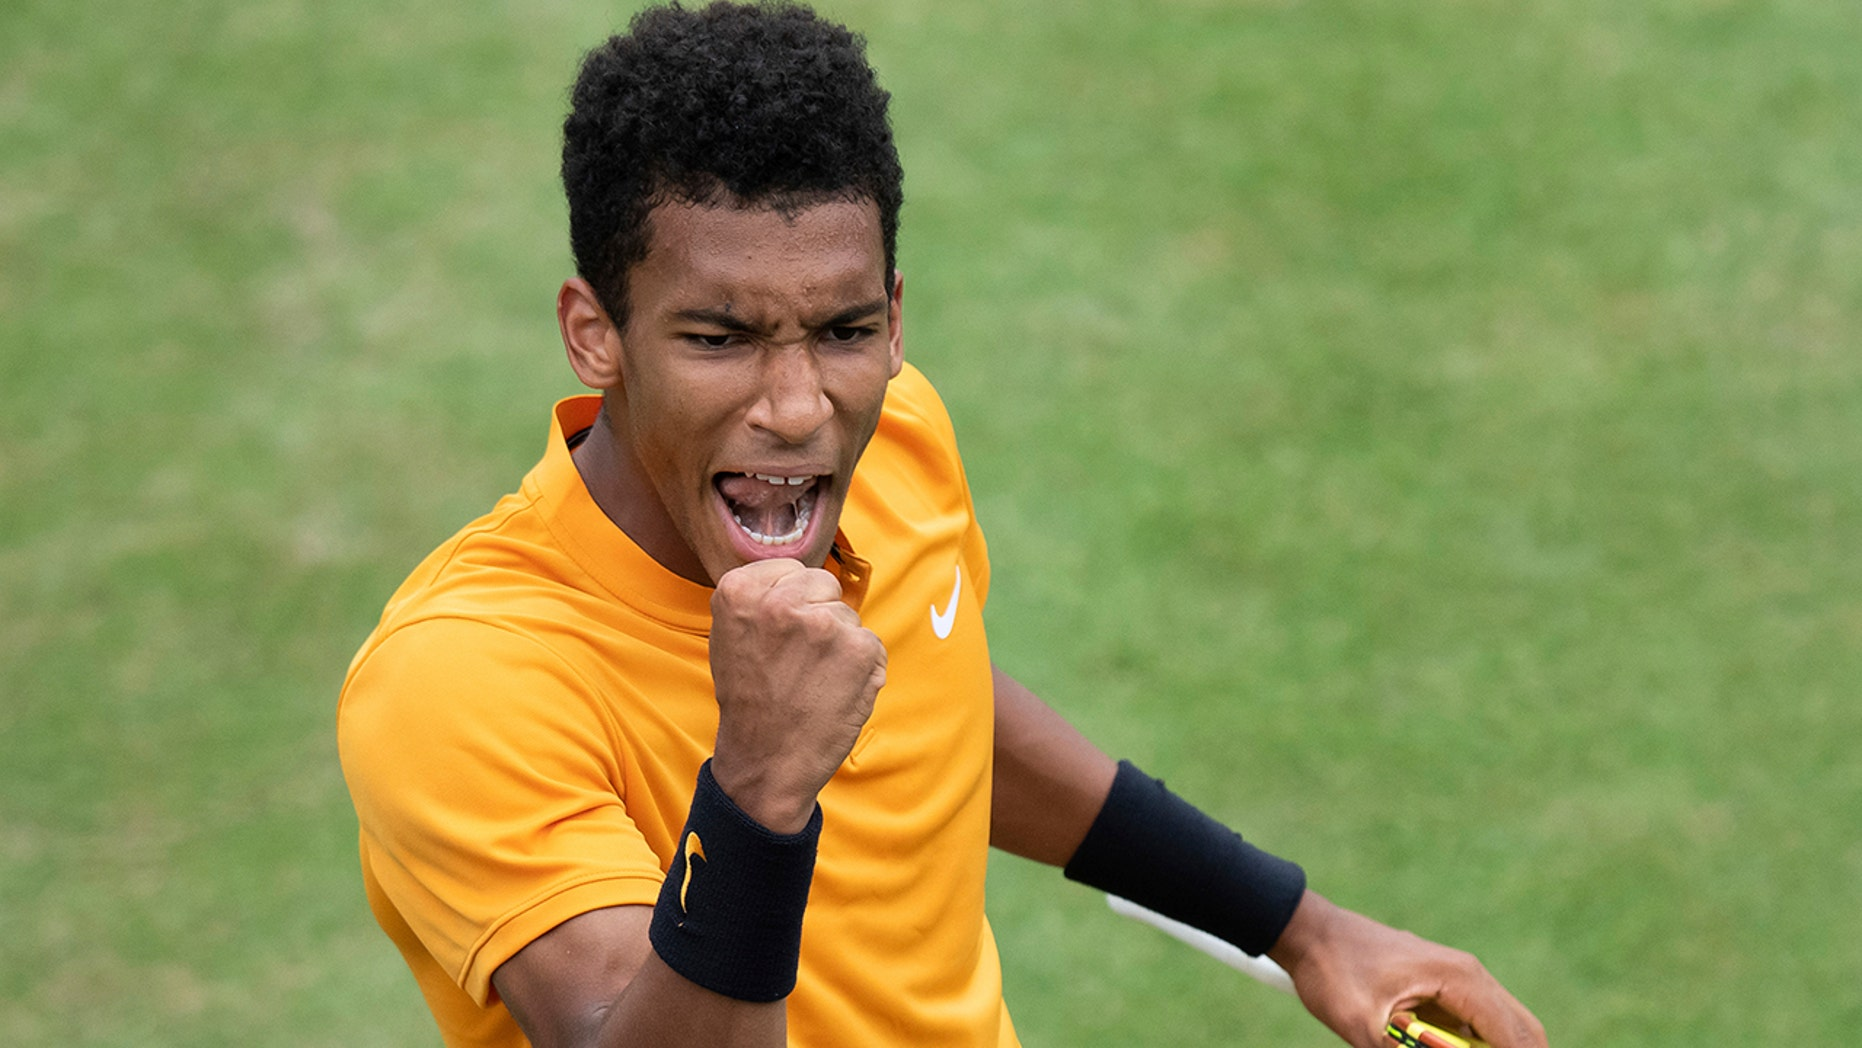 Felix Auger-Aliassime, of Canada, reacts during the quarterfinals of the Stuttgart Open tennis tournament against Dustin Brown of Germany,, Friday, June 14, 2019, in Stuttgart, Germany. Auger-Aliassime won 7-6 (3), 6-7 (2), 7-6 (2). (Silas Stein/dpa via AP)